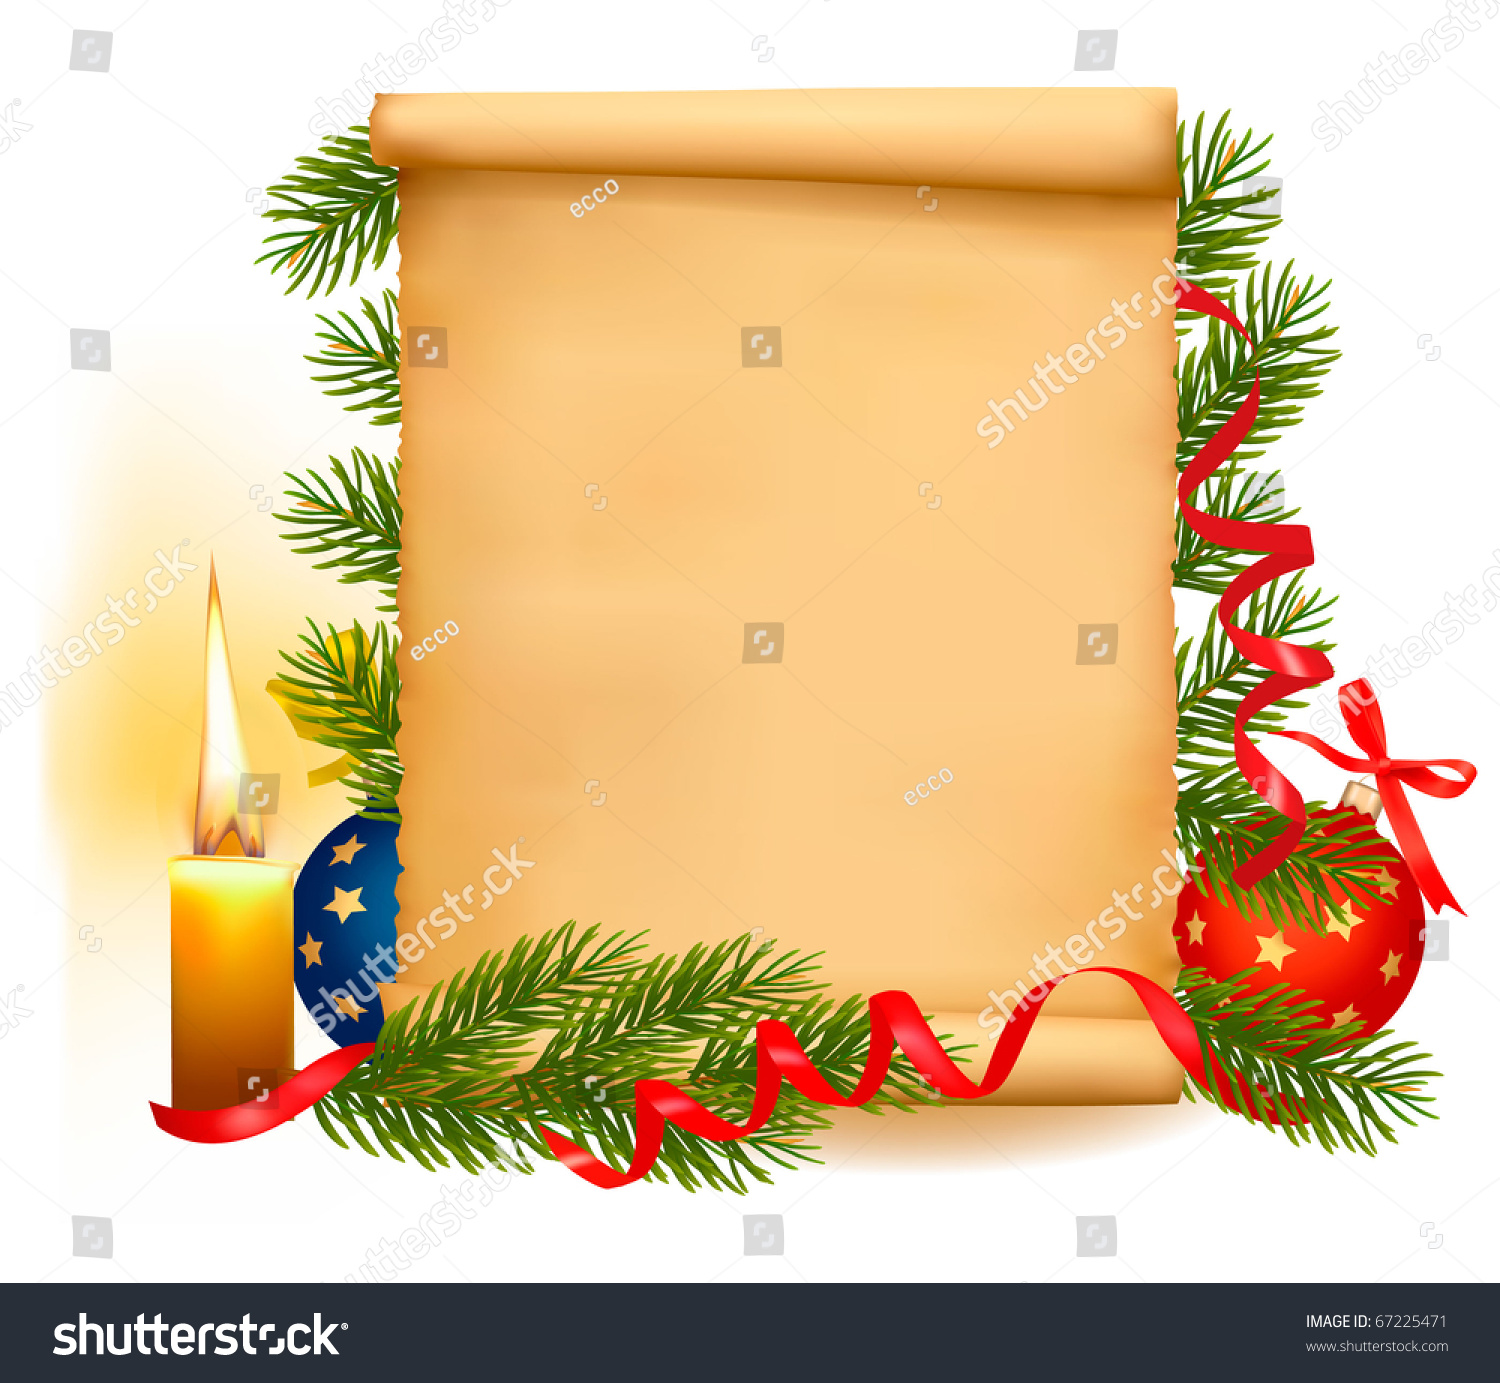 Christmas Decorations On Old Paper Christmas Stock Vector (Royalty ...